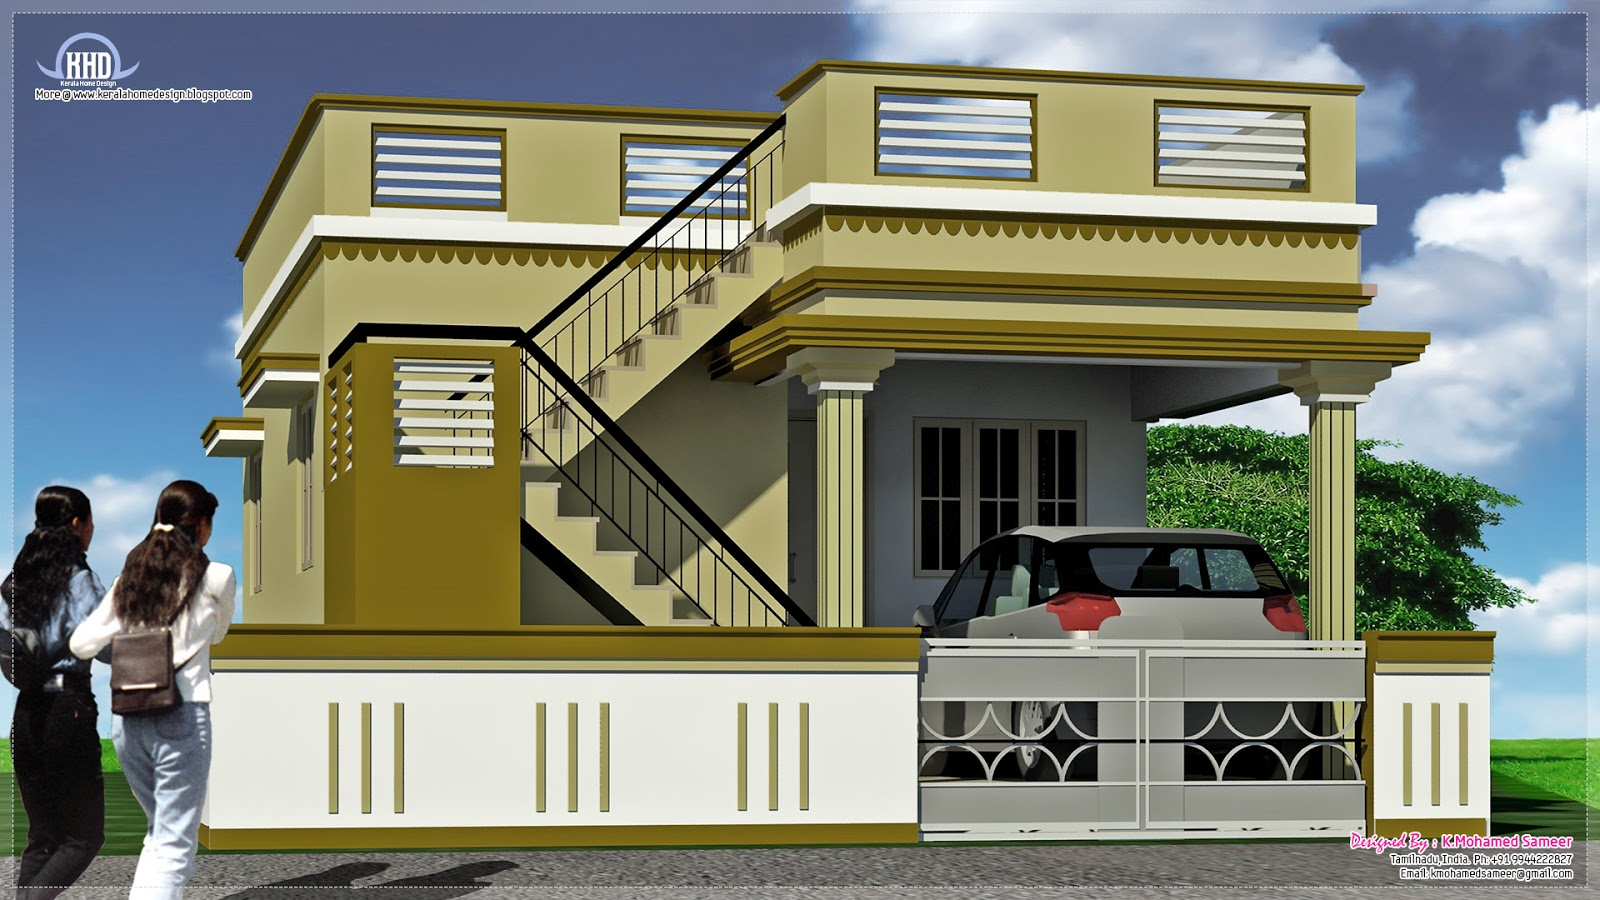 2 south indian house exterior designs house design plans for Home designs 4 you